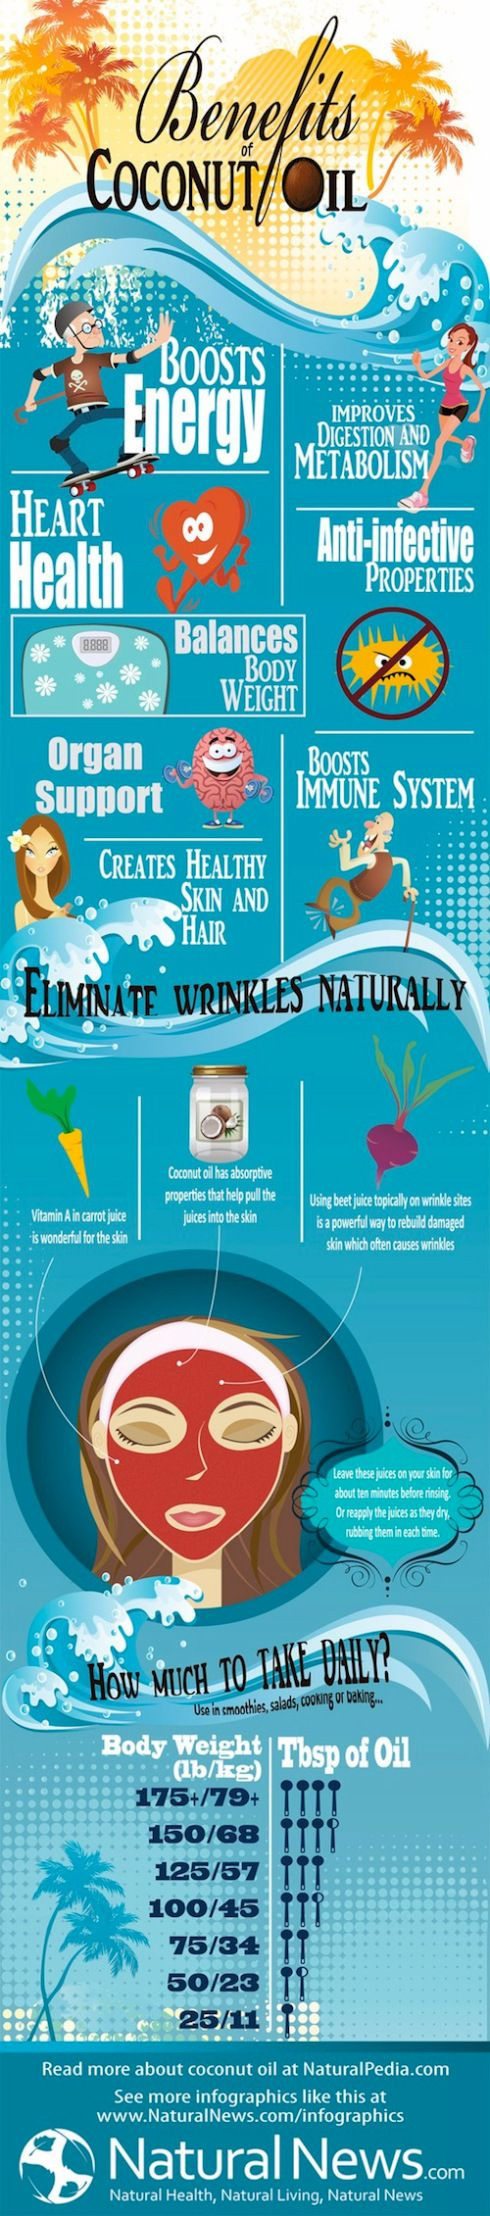 Infographic - Benefits of Coconut Oil.